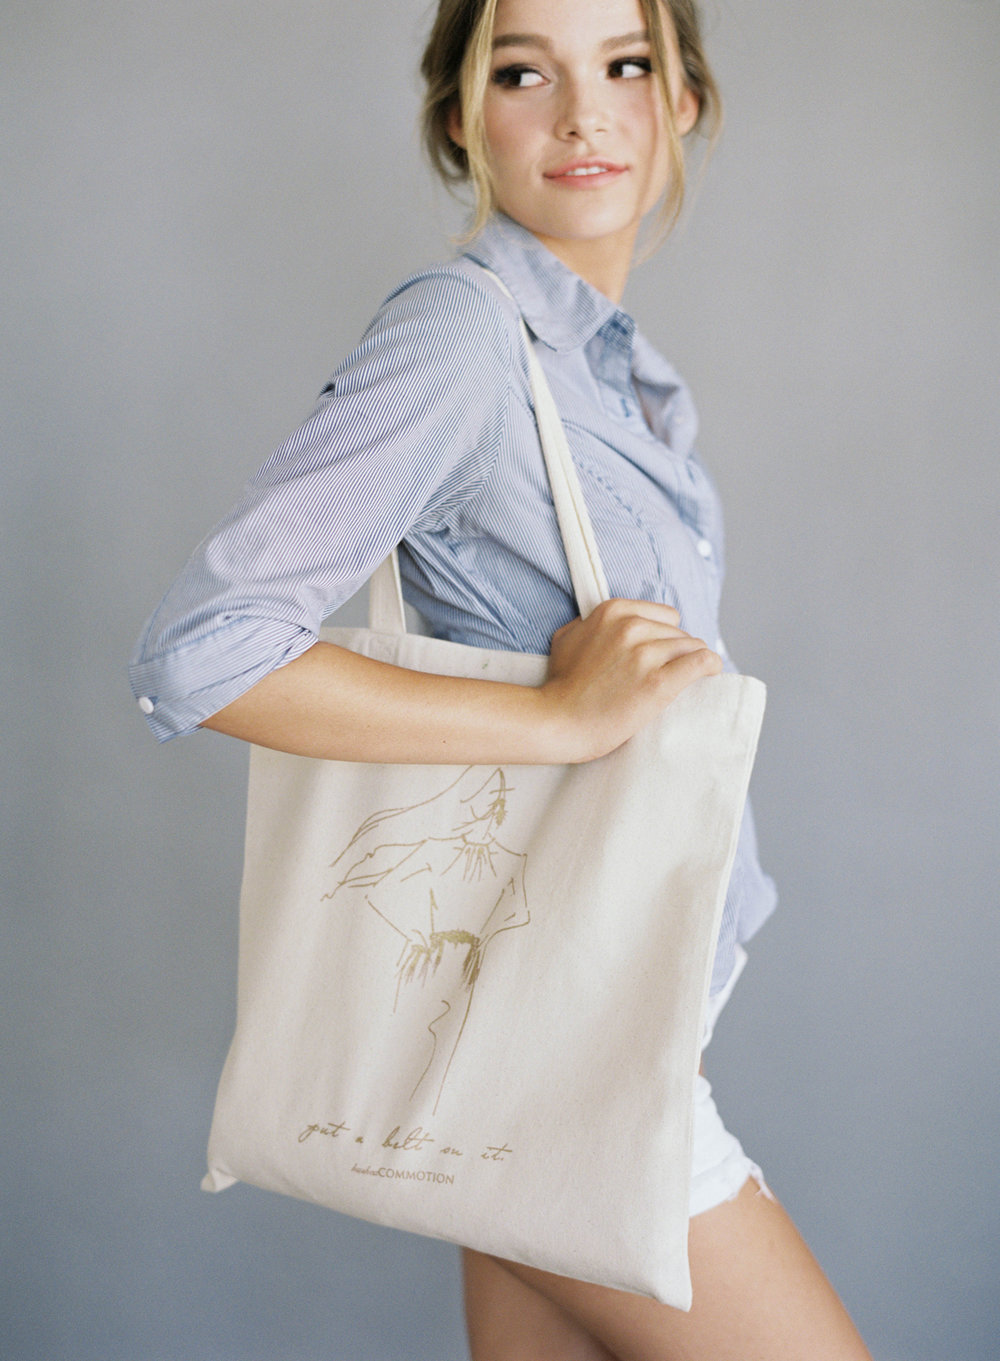 Hushed Commotion, Jen Huang, PUT A BELT ON IT TOTE.jpg